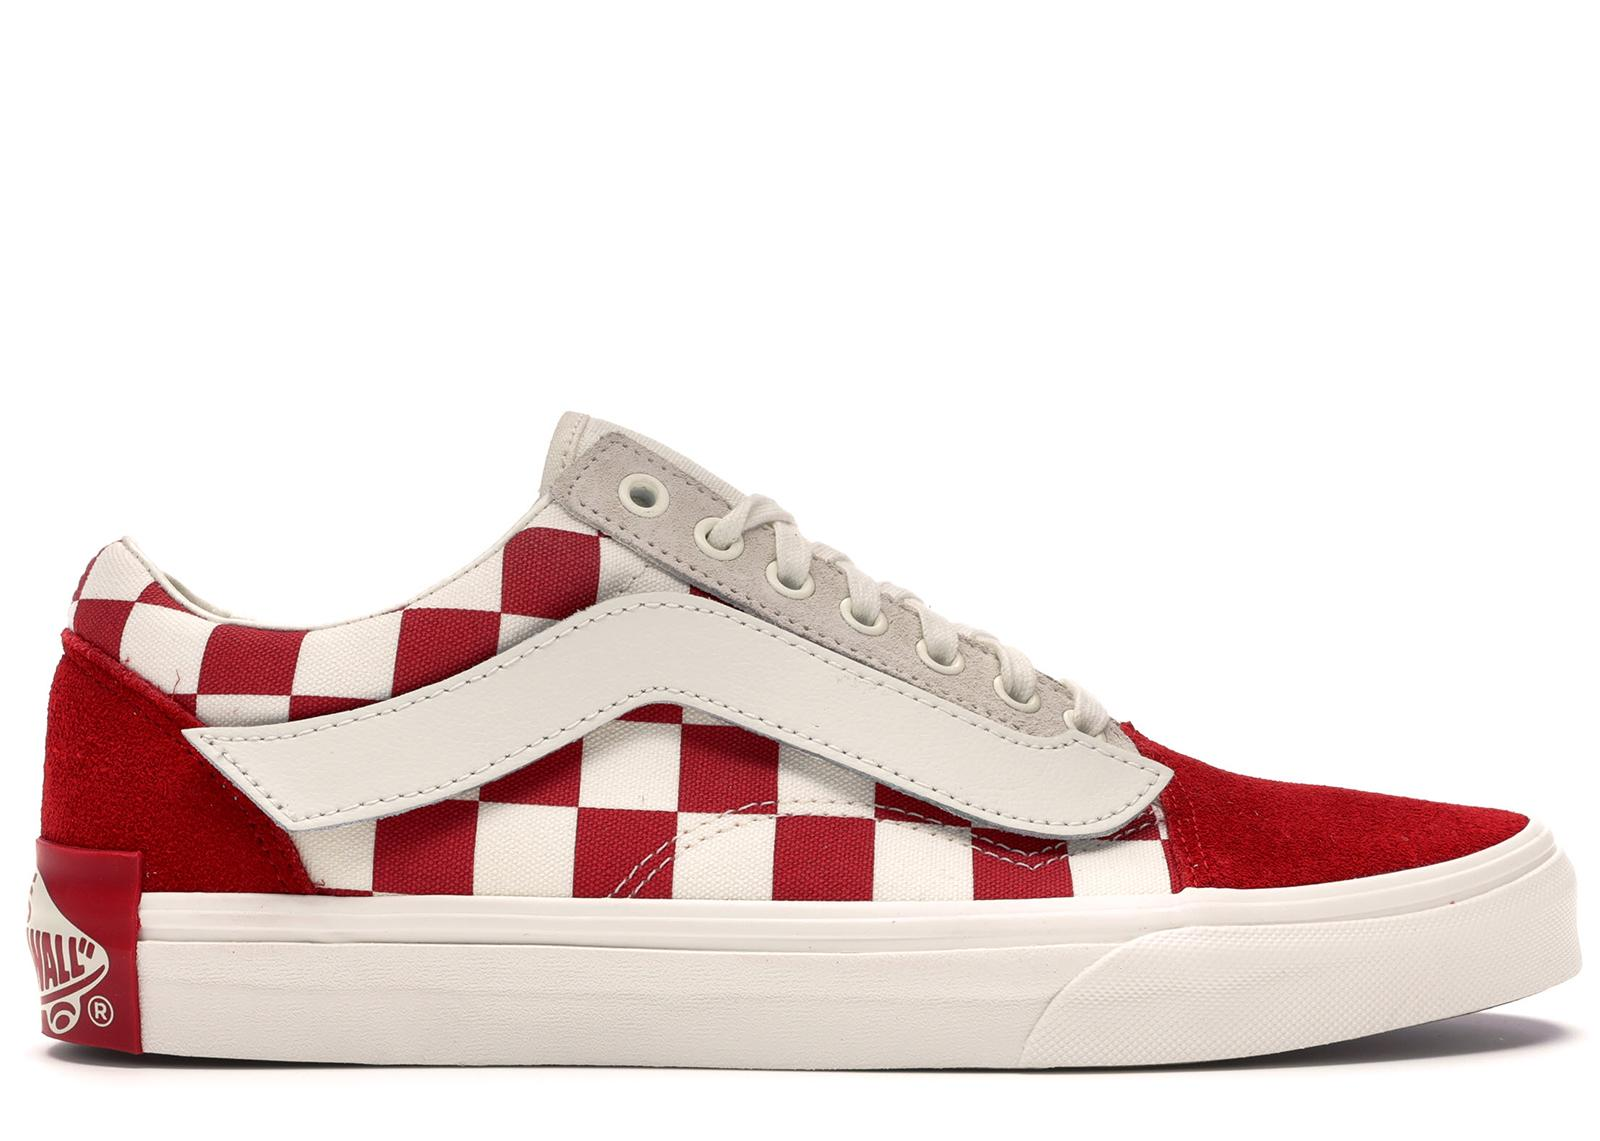 d4fa85f32f35c4 Lyst - Vans Old Skool Purlicue Year Of The Pig in Red for Men